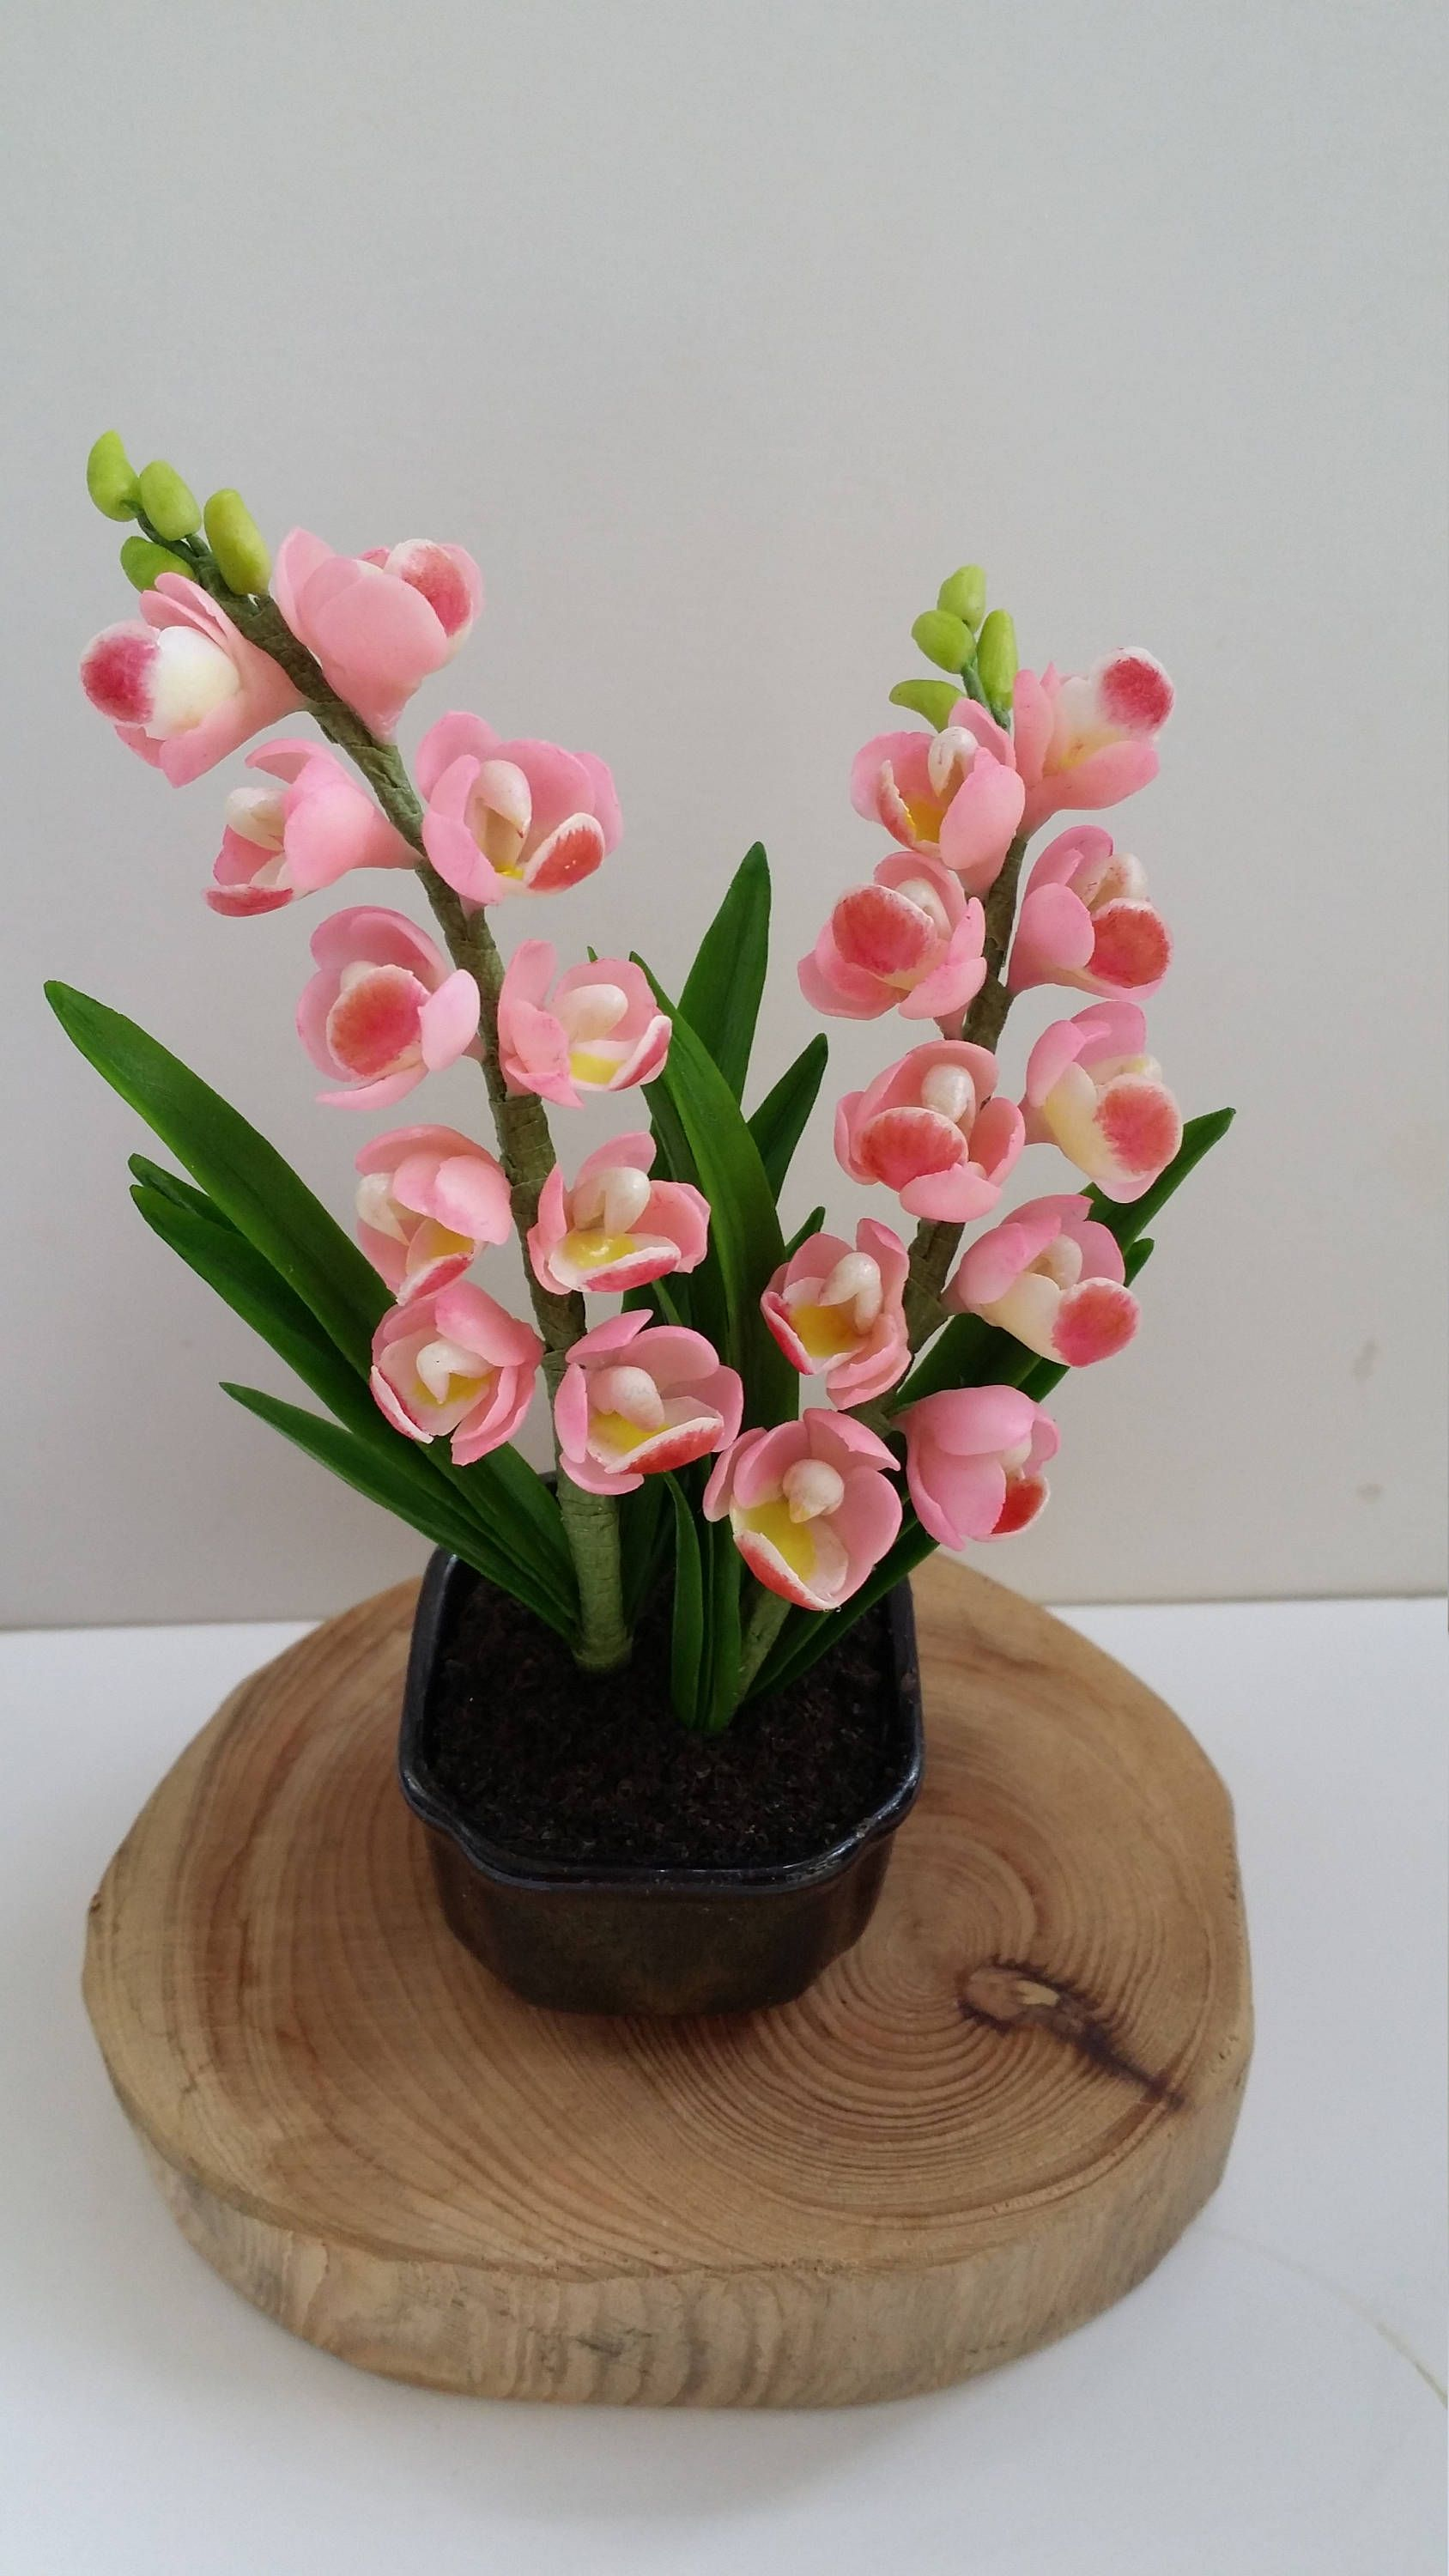 Items Similar To Handmade Floral Arrangement Home Decor Polymer Clay Flower Gift Cymbidium Orchid Elegant Gift For Her Women Mother Birthday On Etsy Polymer Clay Flowers Clay Flowers Flower Gift